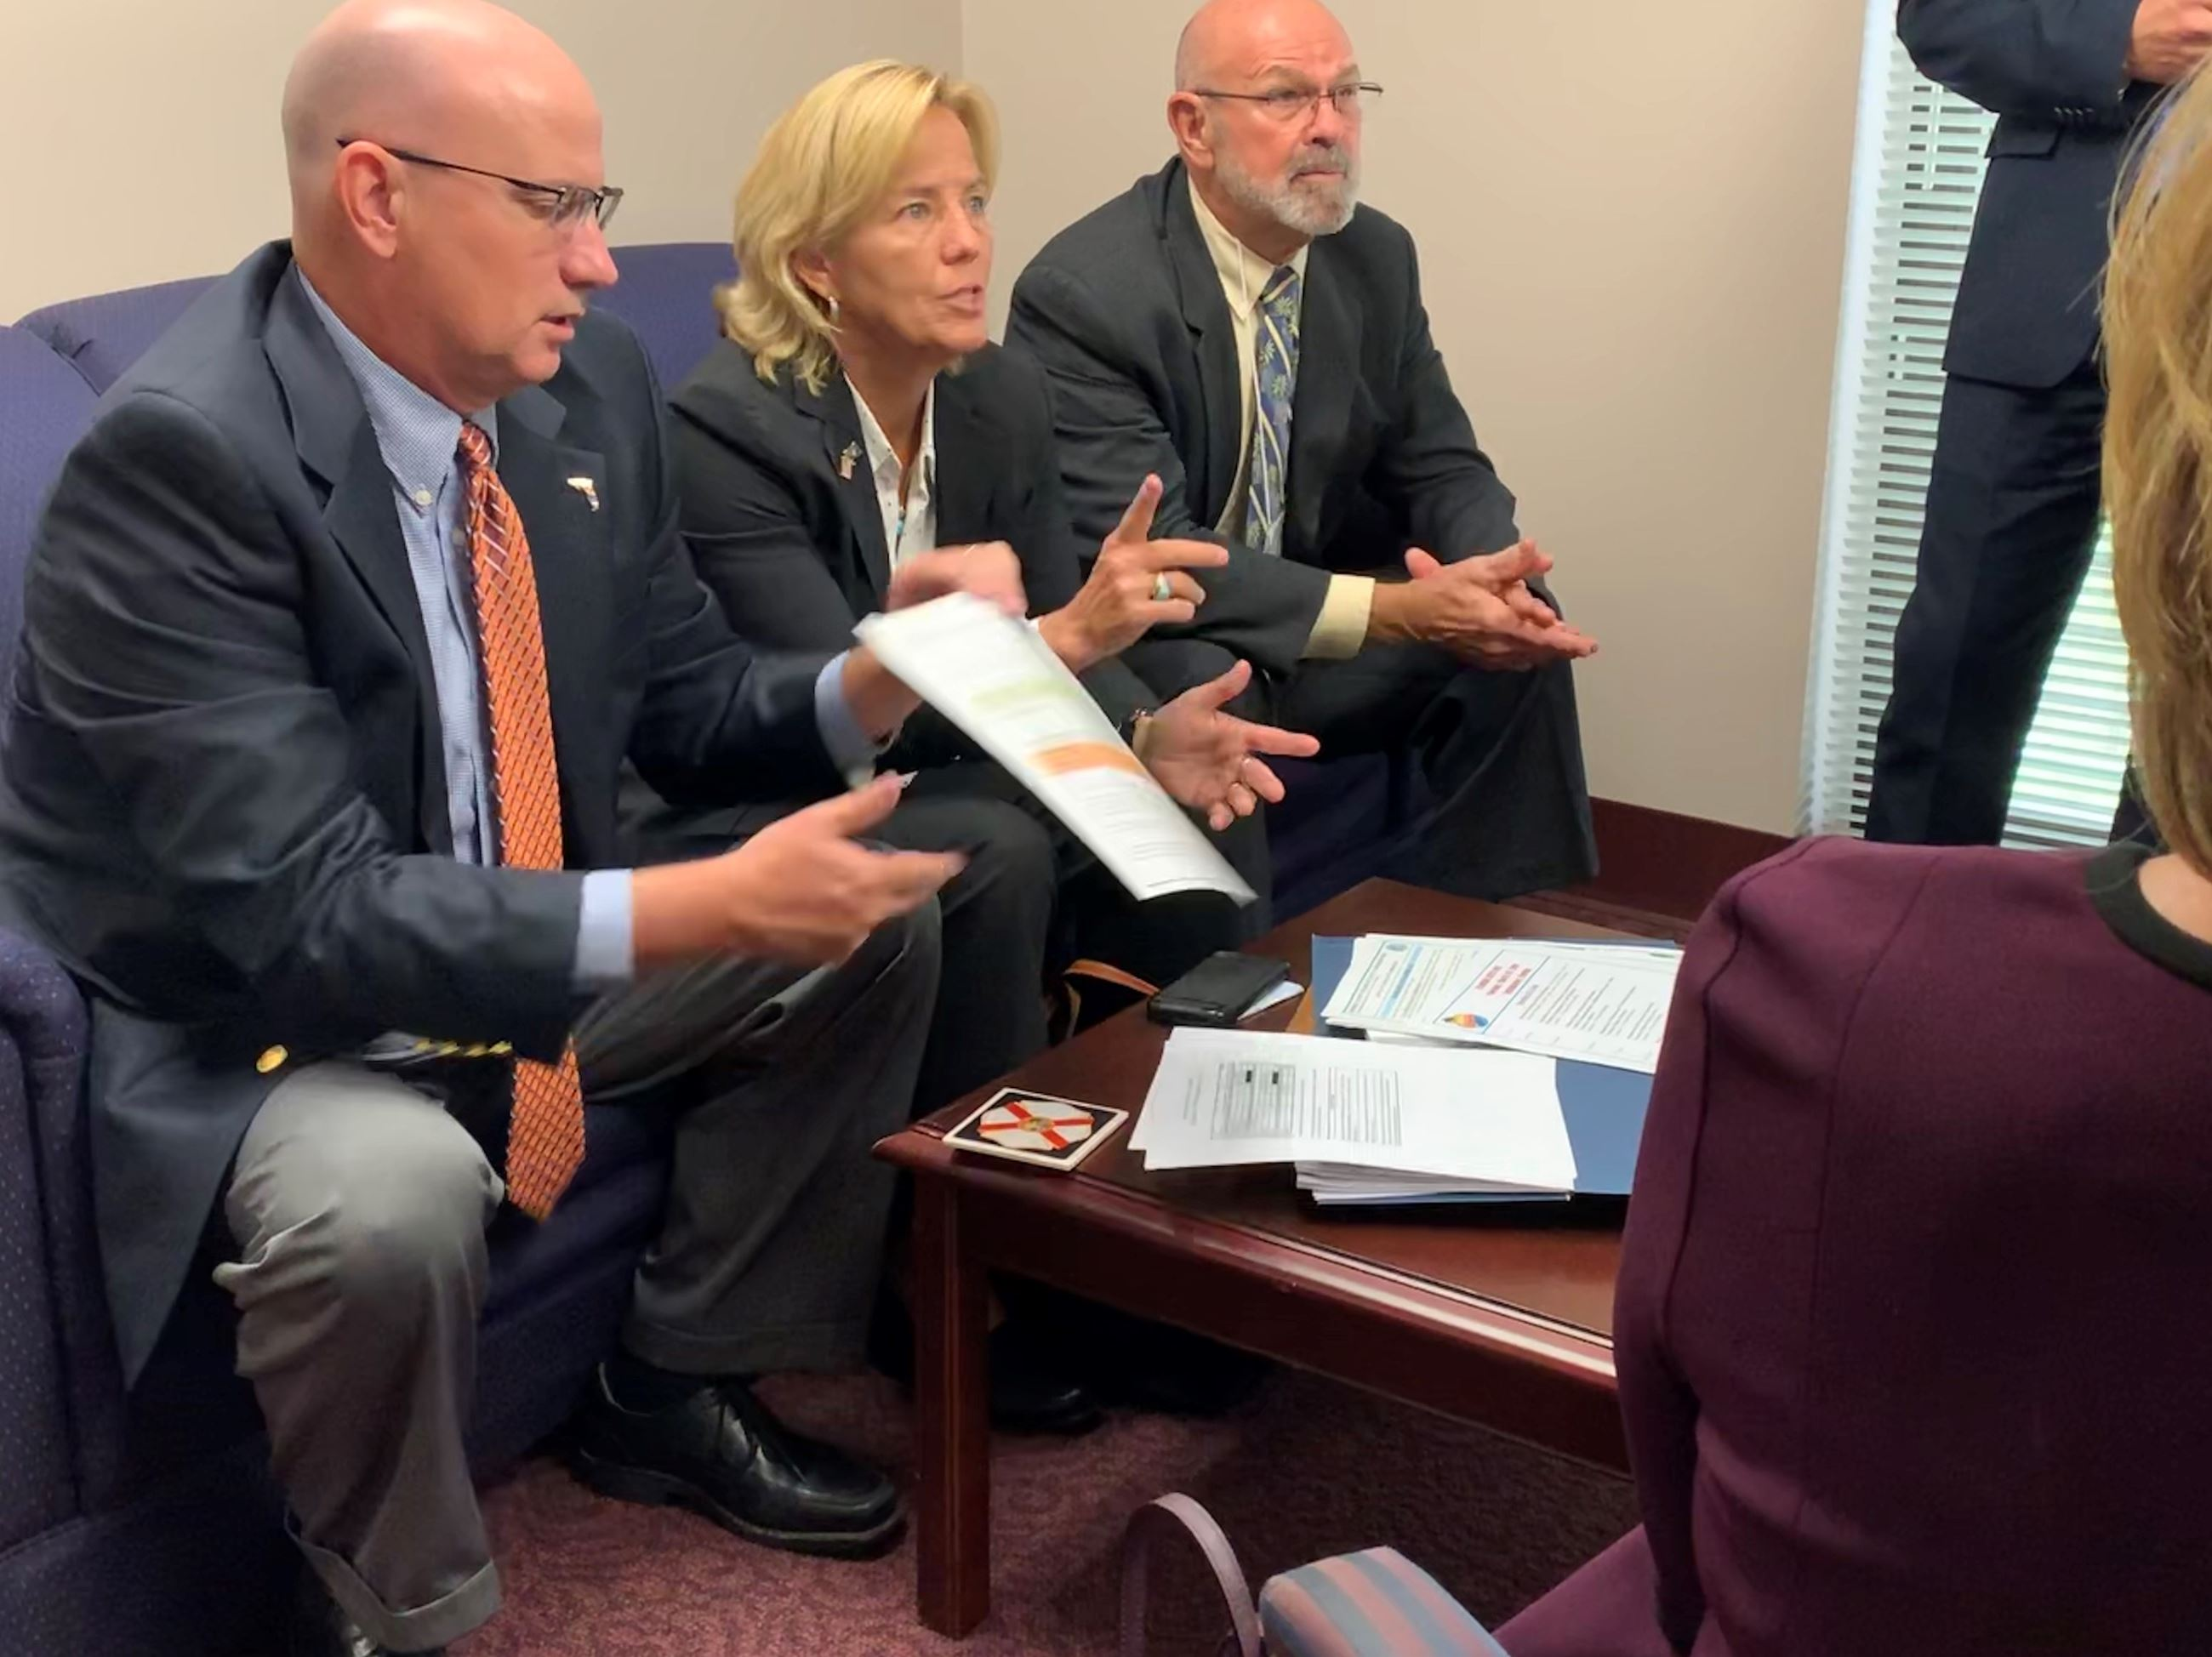 Legislative Affairs gives update to Florida House